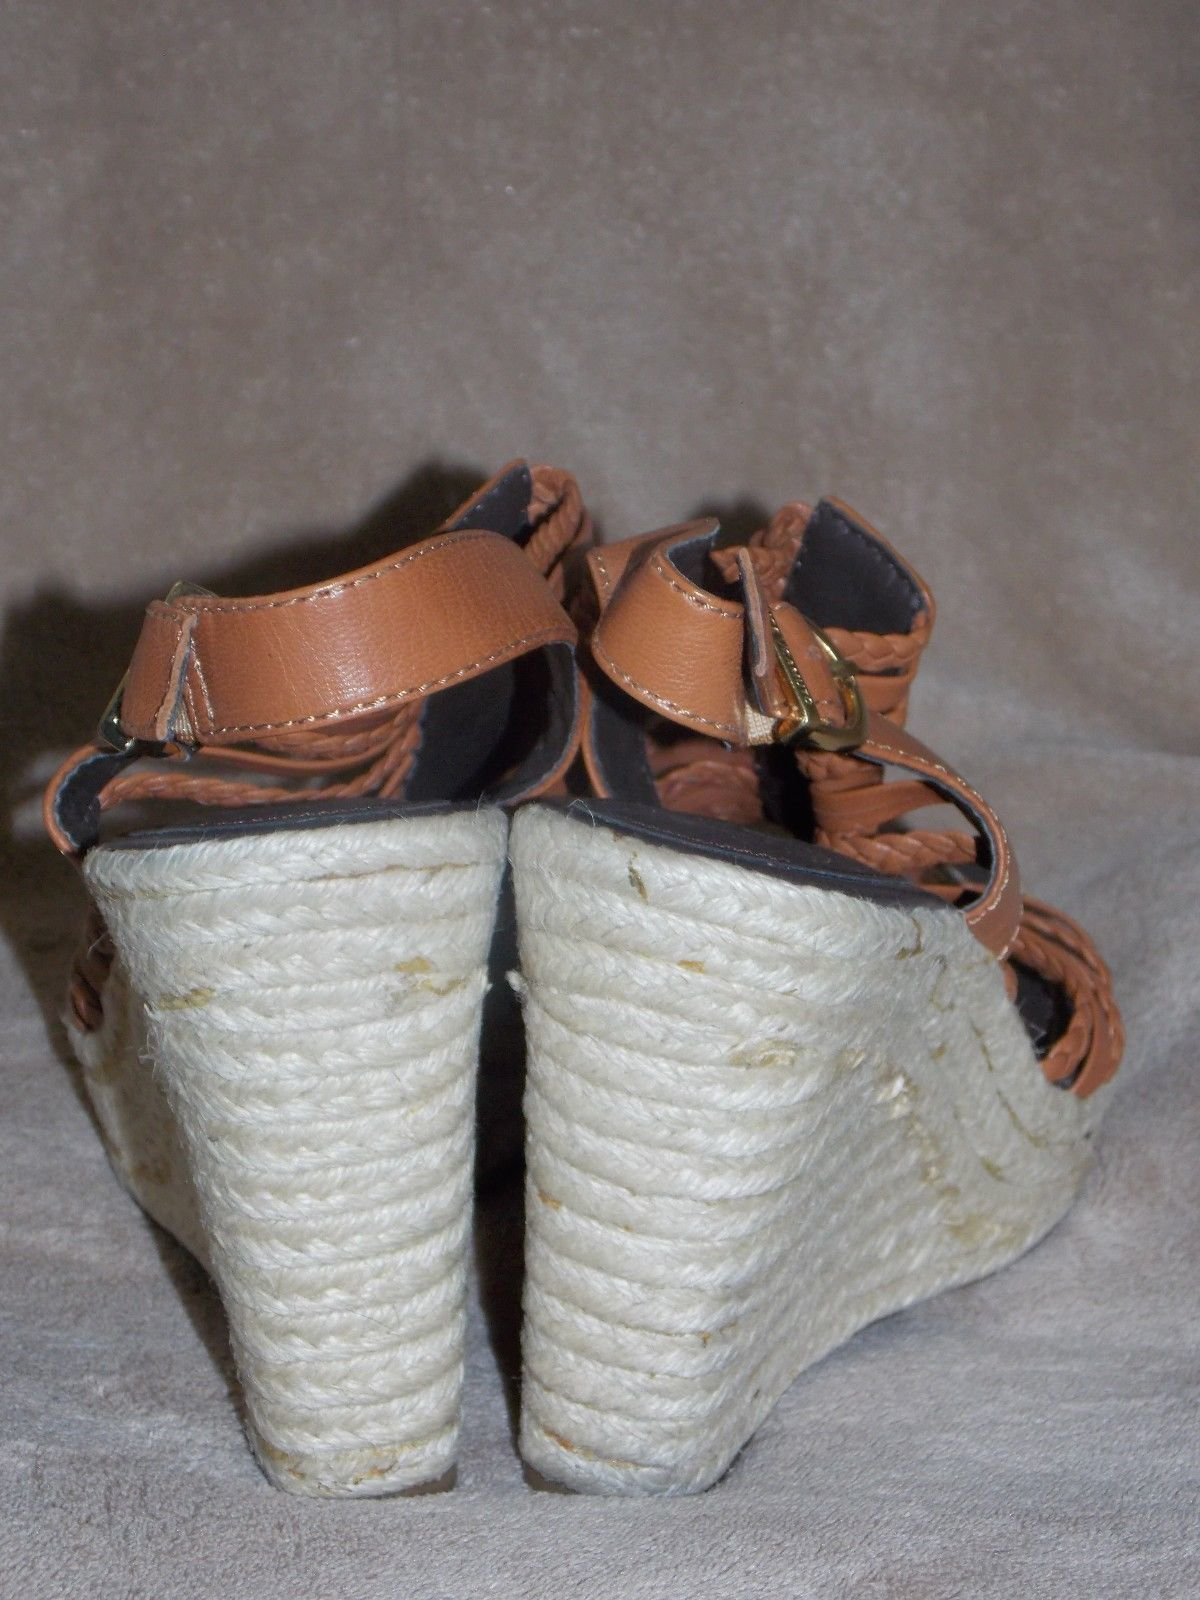 Vince Camuto Strappy Brown BRAIDED Wedges 10.5 B Used No Box